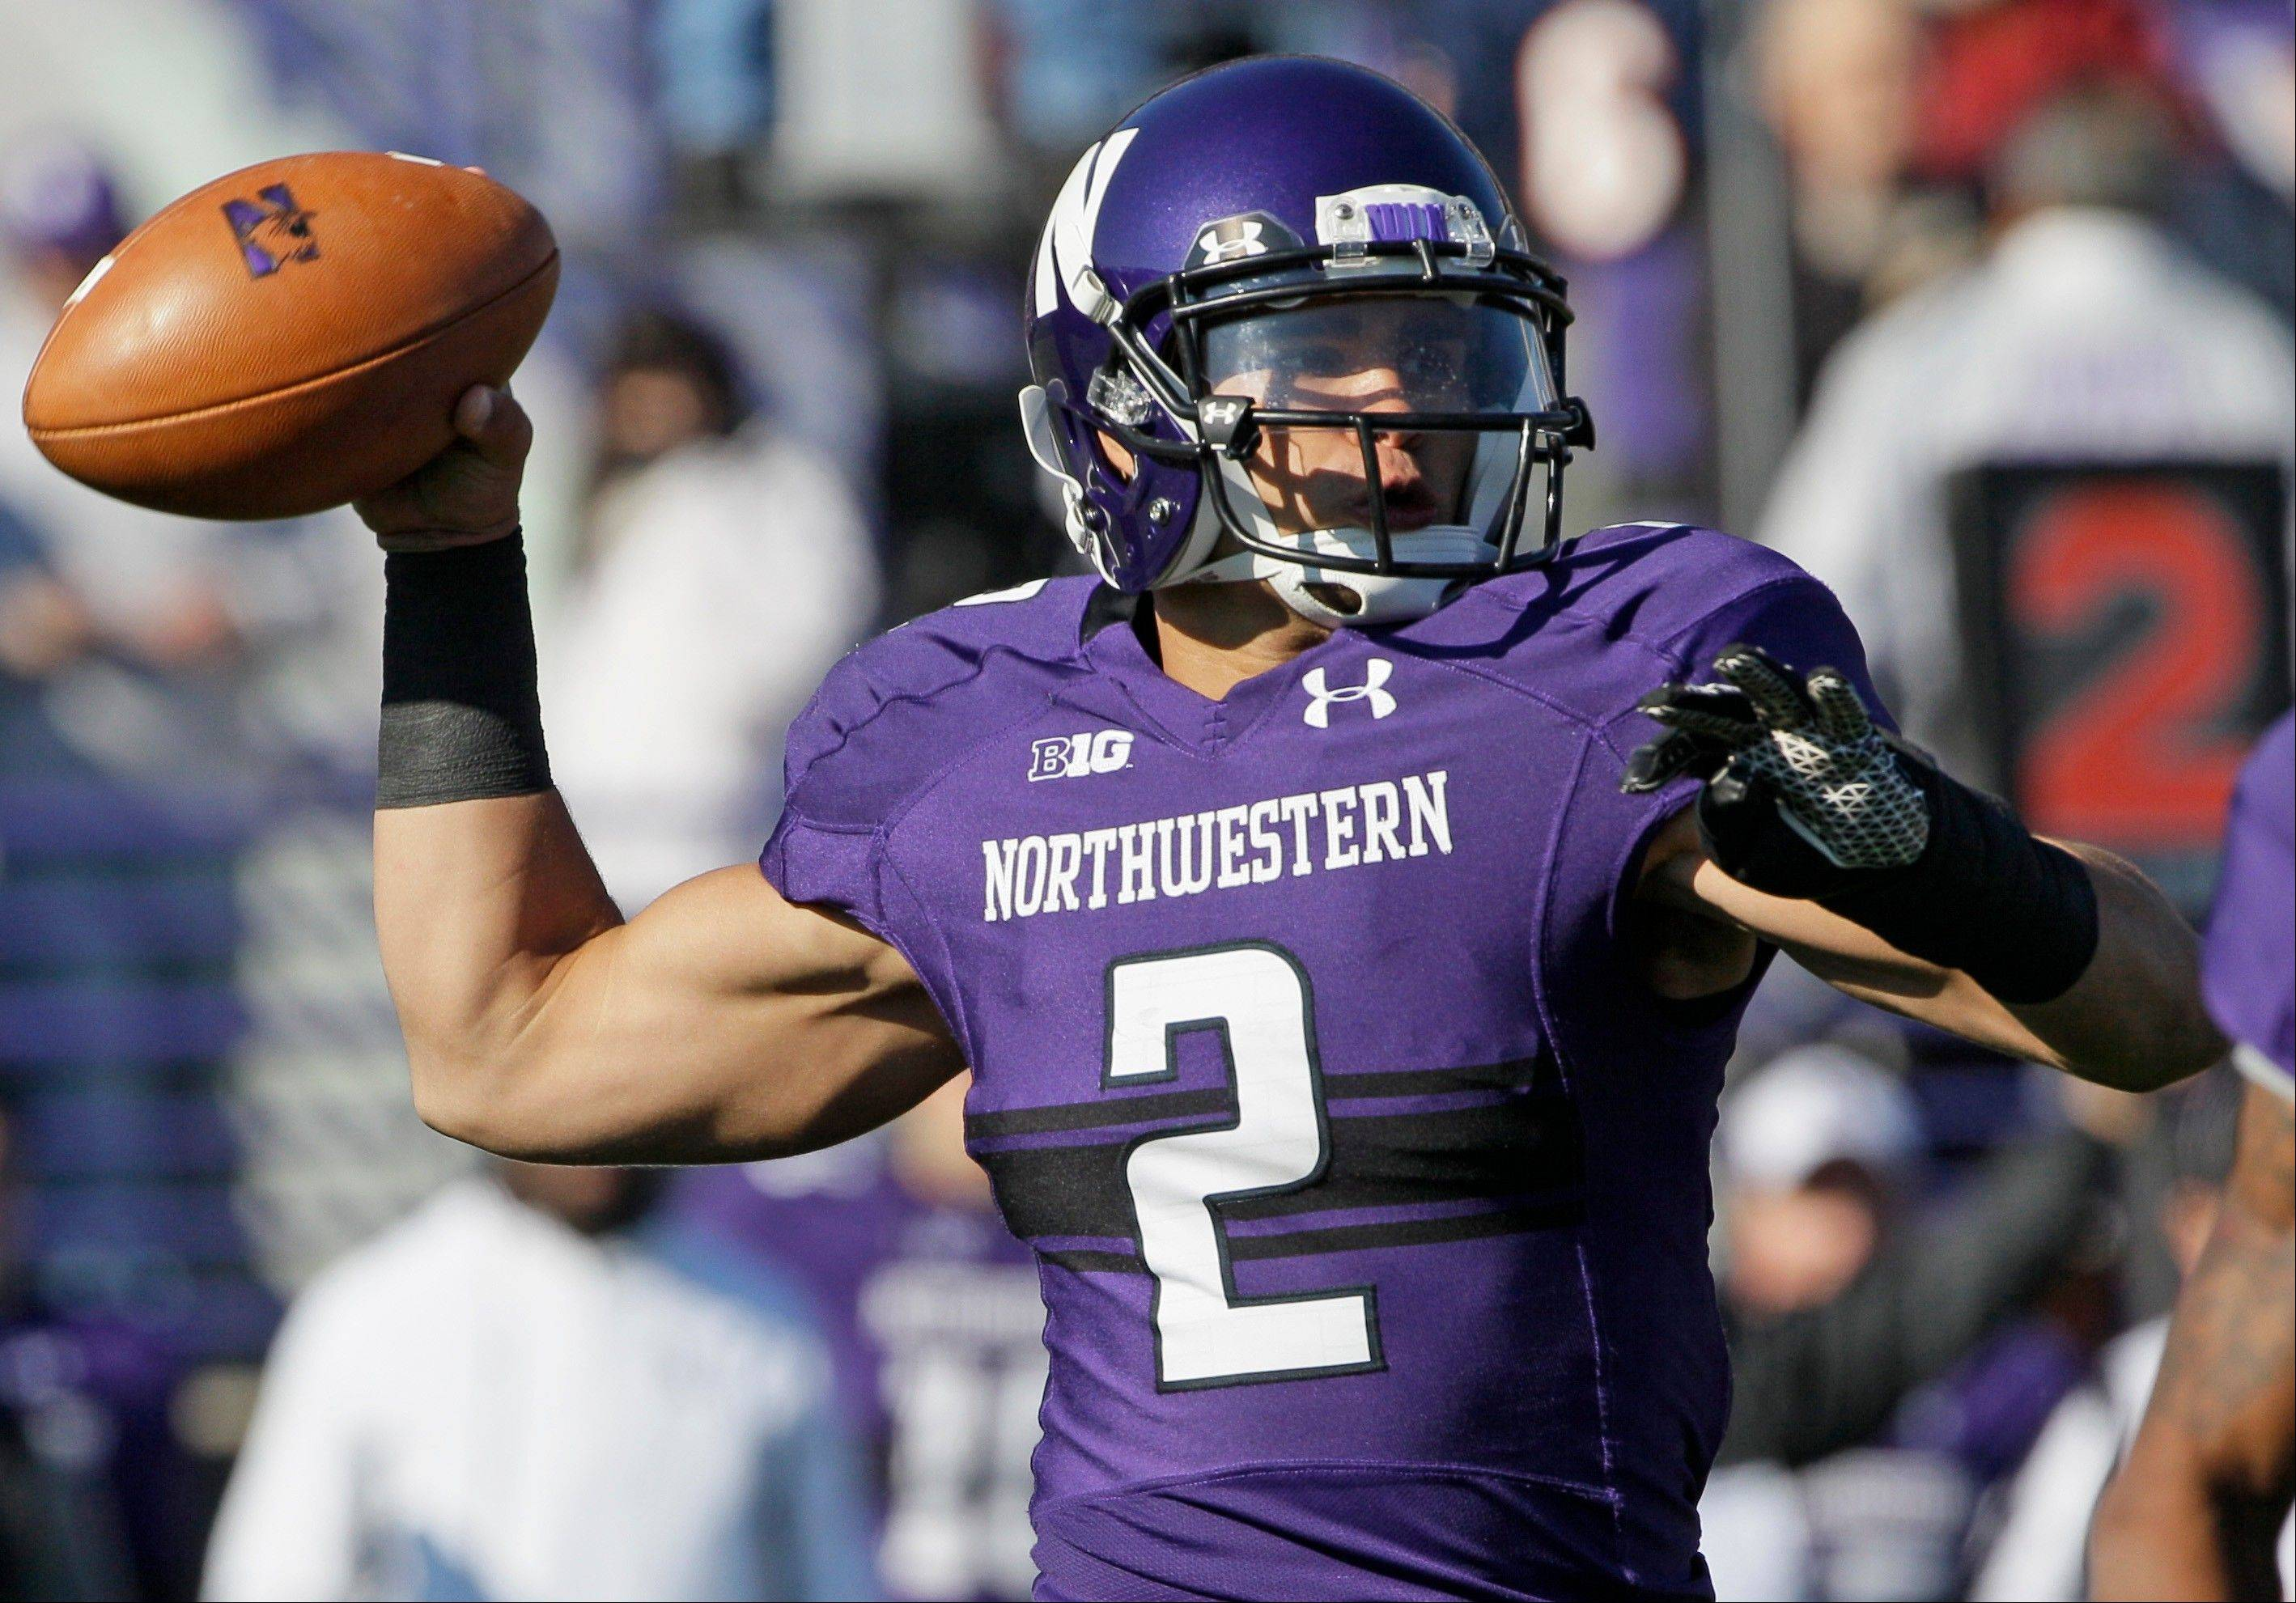 Northwestern quarterback Kain Colter threw for 872 yards last season and also has 60 career receptions.